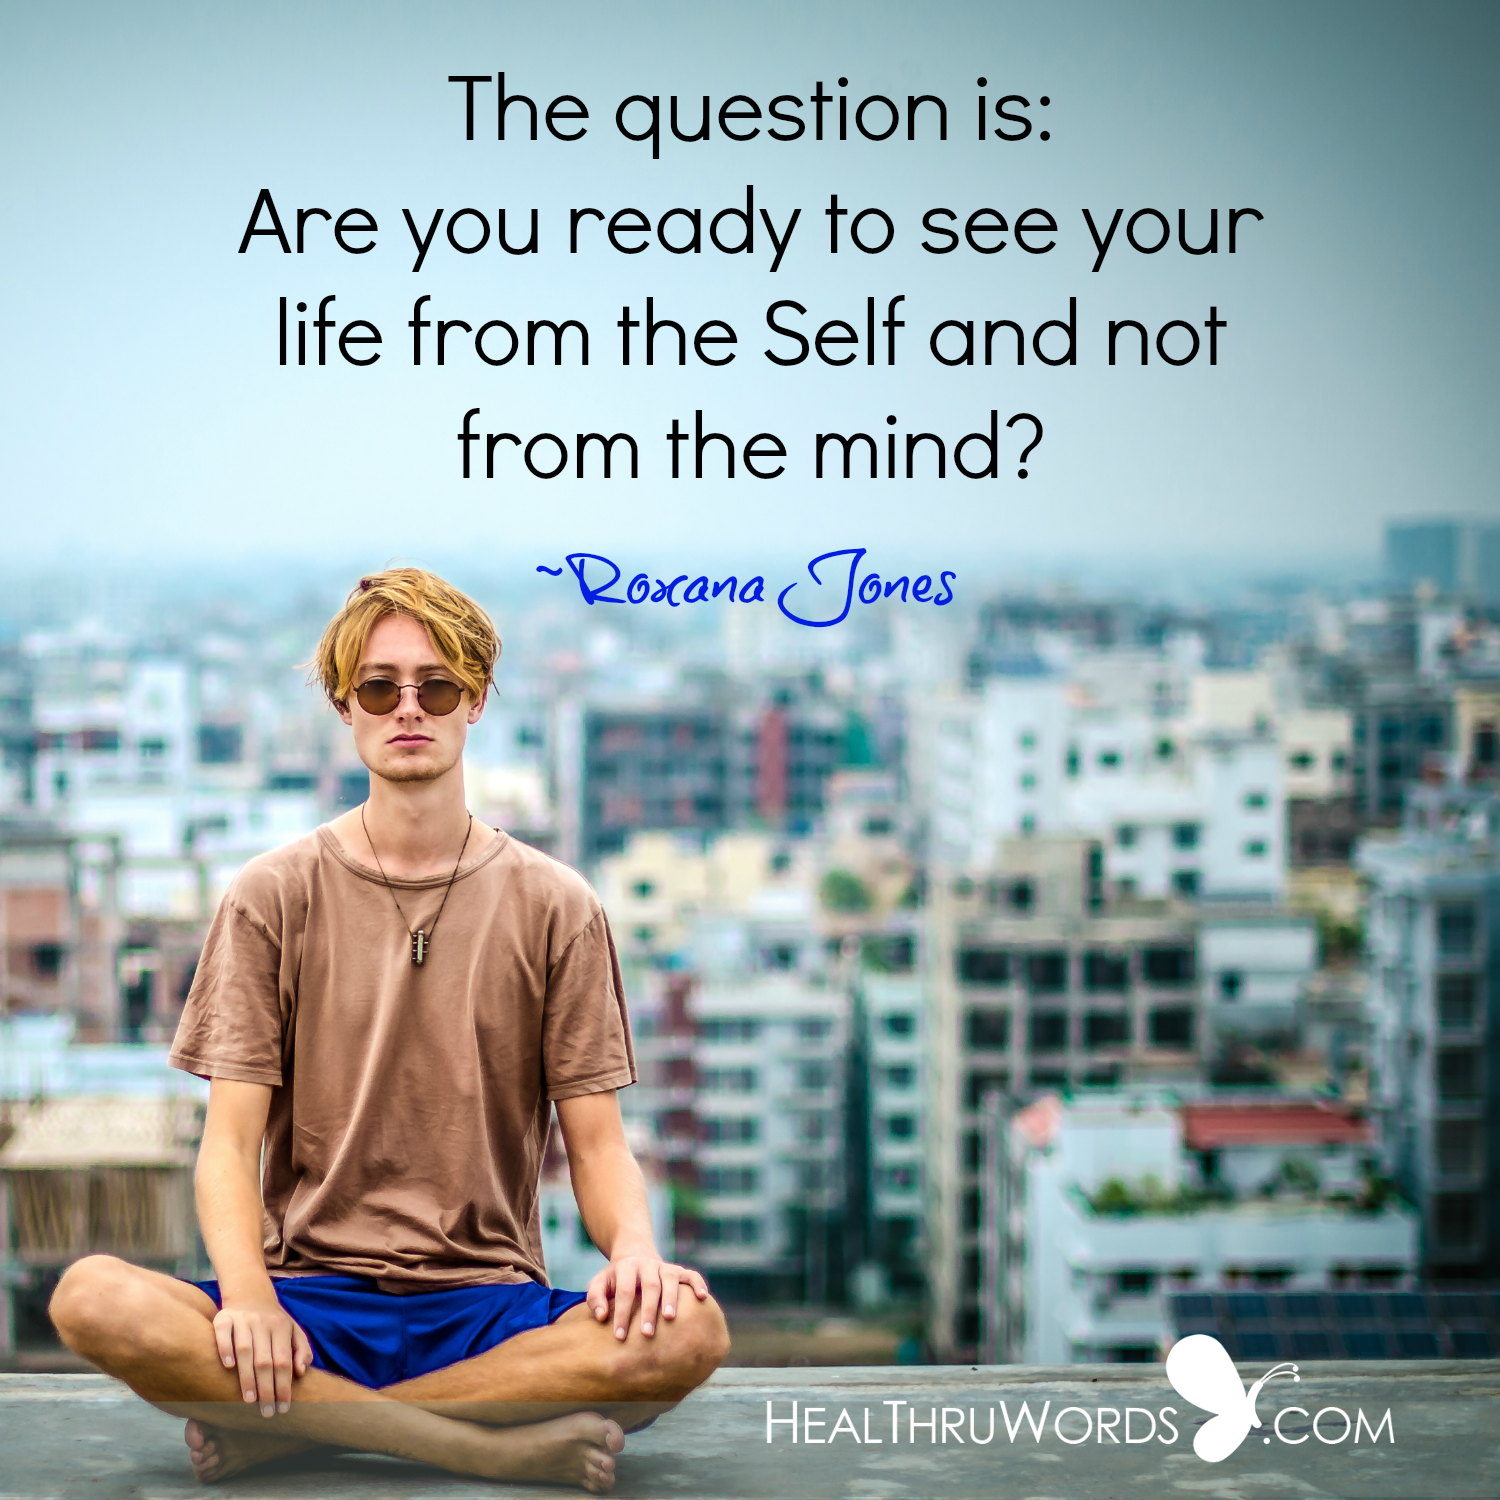 Inspirational Image: Living from the Self